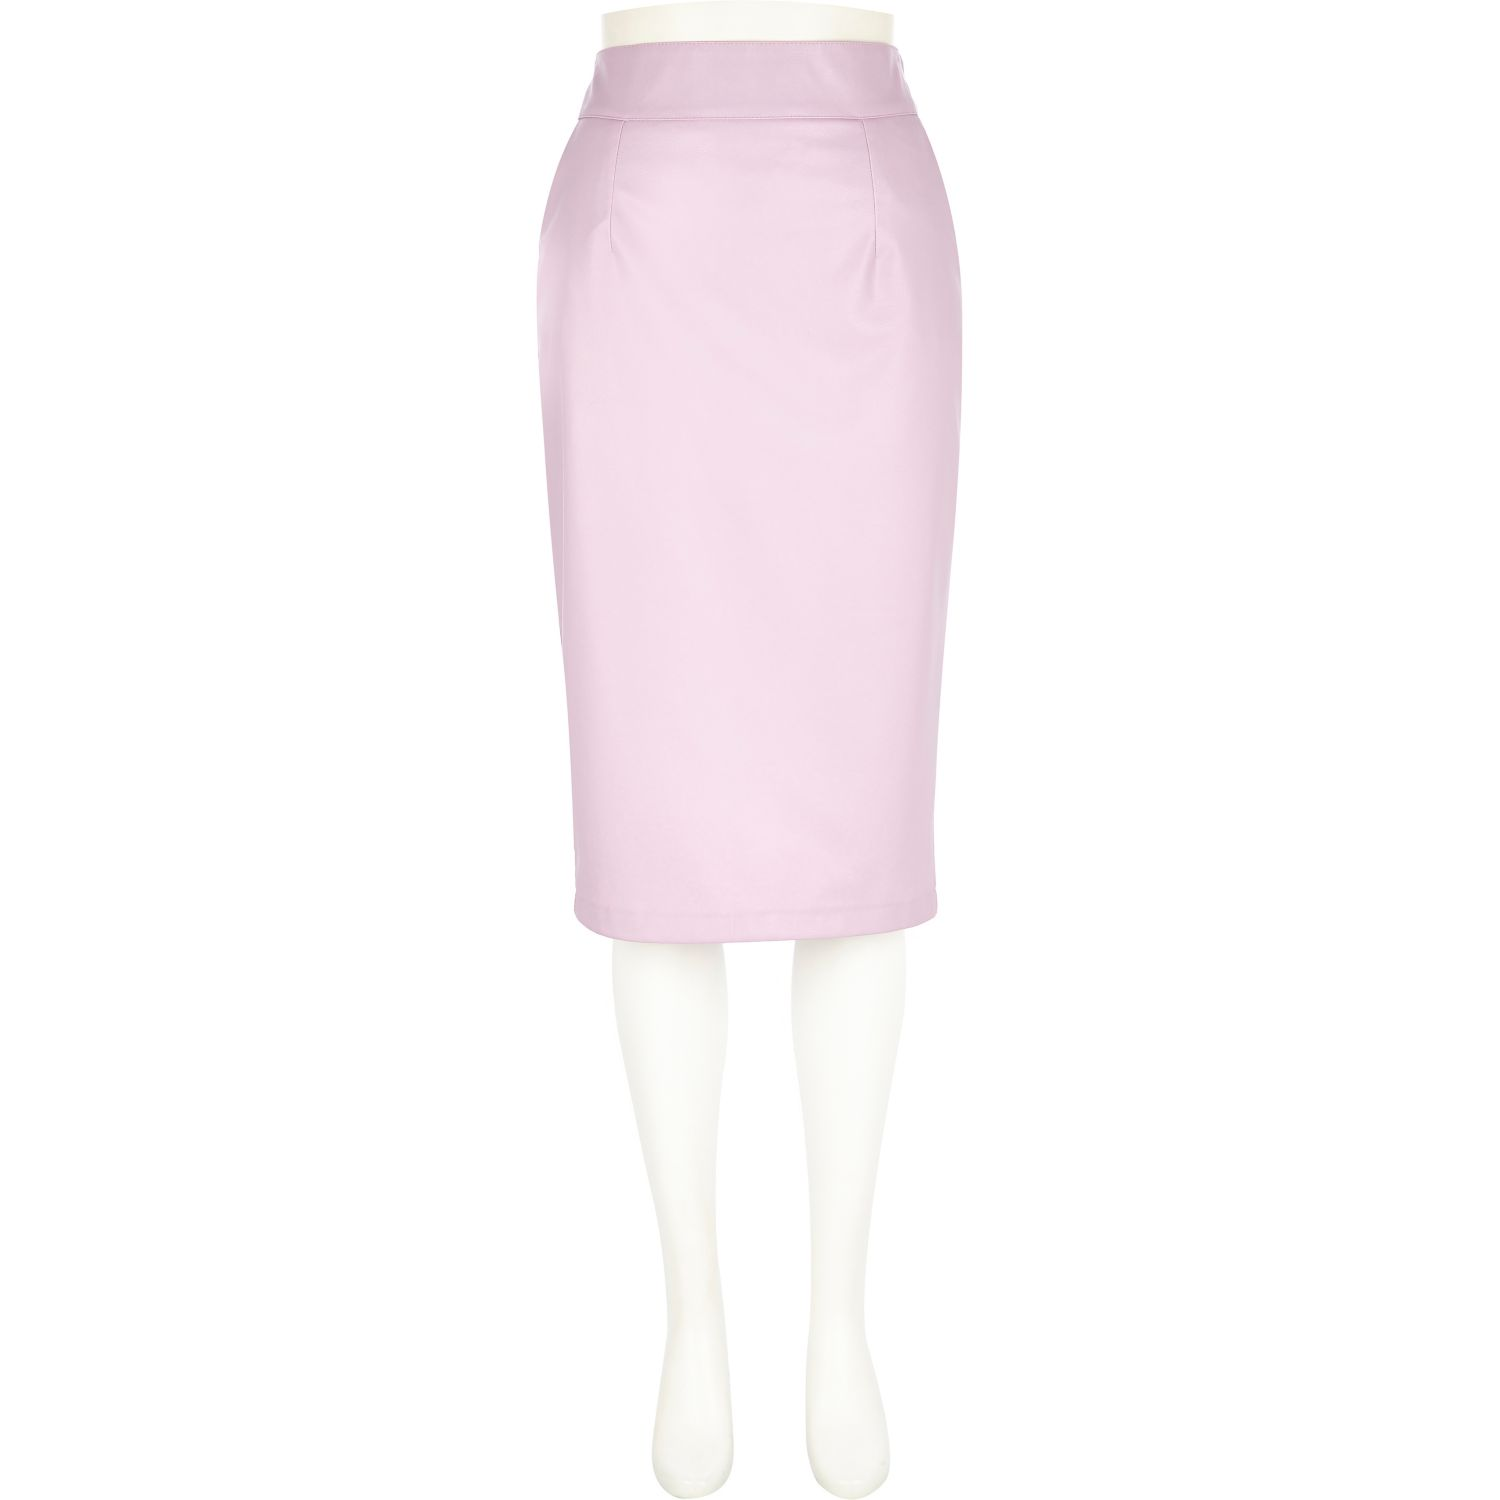 pink leather-look pencil skirt - tube / pencil skirts - skirts - women